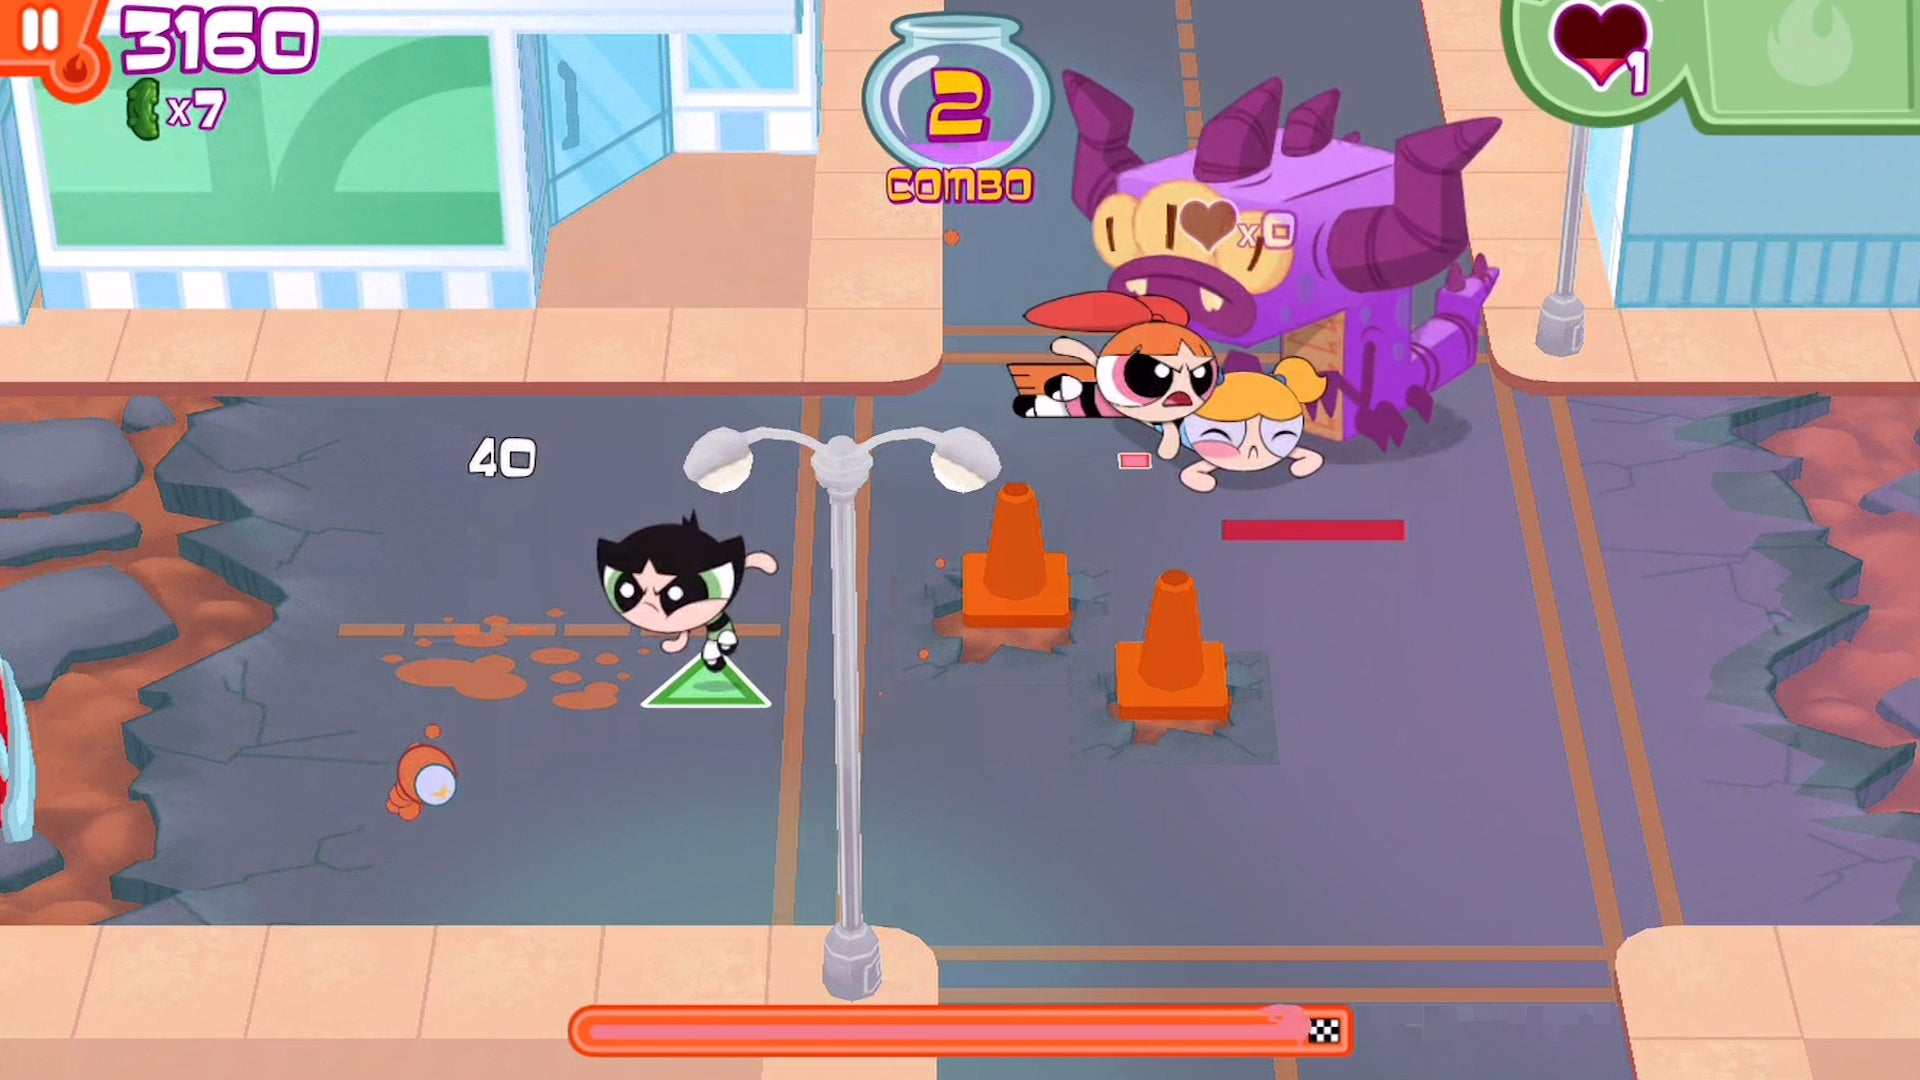 Powerpuff Girls Flipped Out Is Two Different Games, Depending How You Look At It